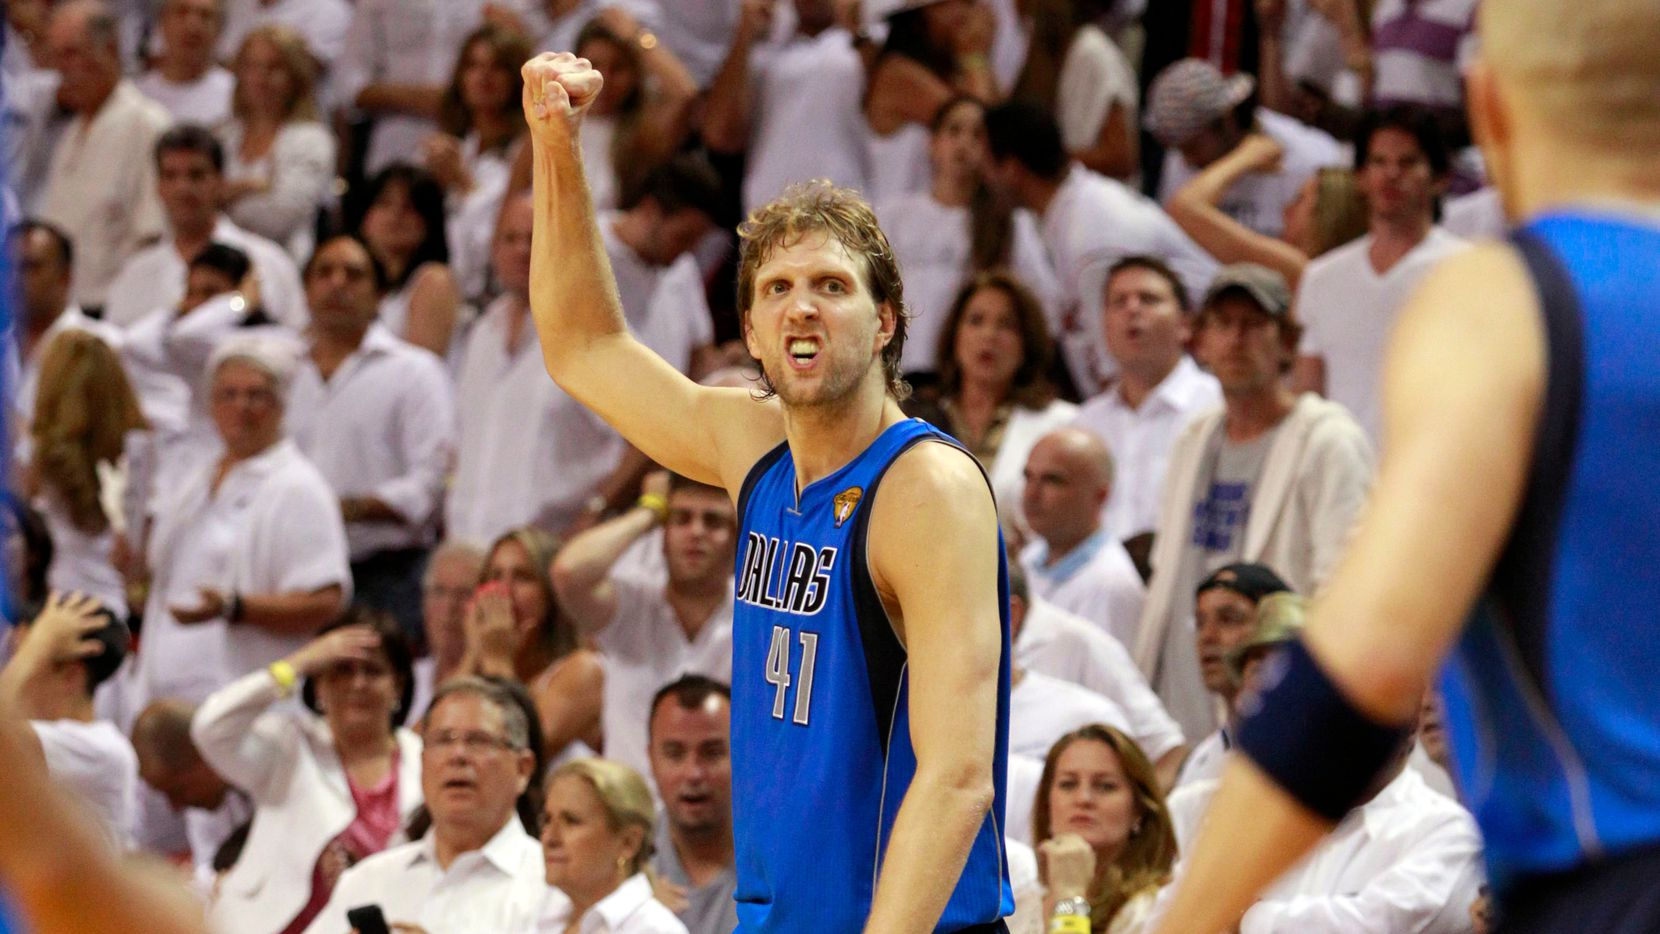 Dallas Mavericks power forward Dirk Nowitzki (41) reacts after they defeated the Miami Heat in Game 2 of the NBA Finals at American Airlines Arena Thursday, June 2, 2011 in Miami. Dallas won the game 95-93.